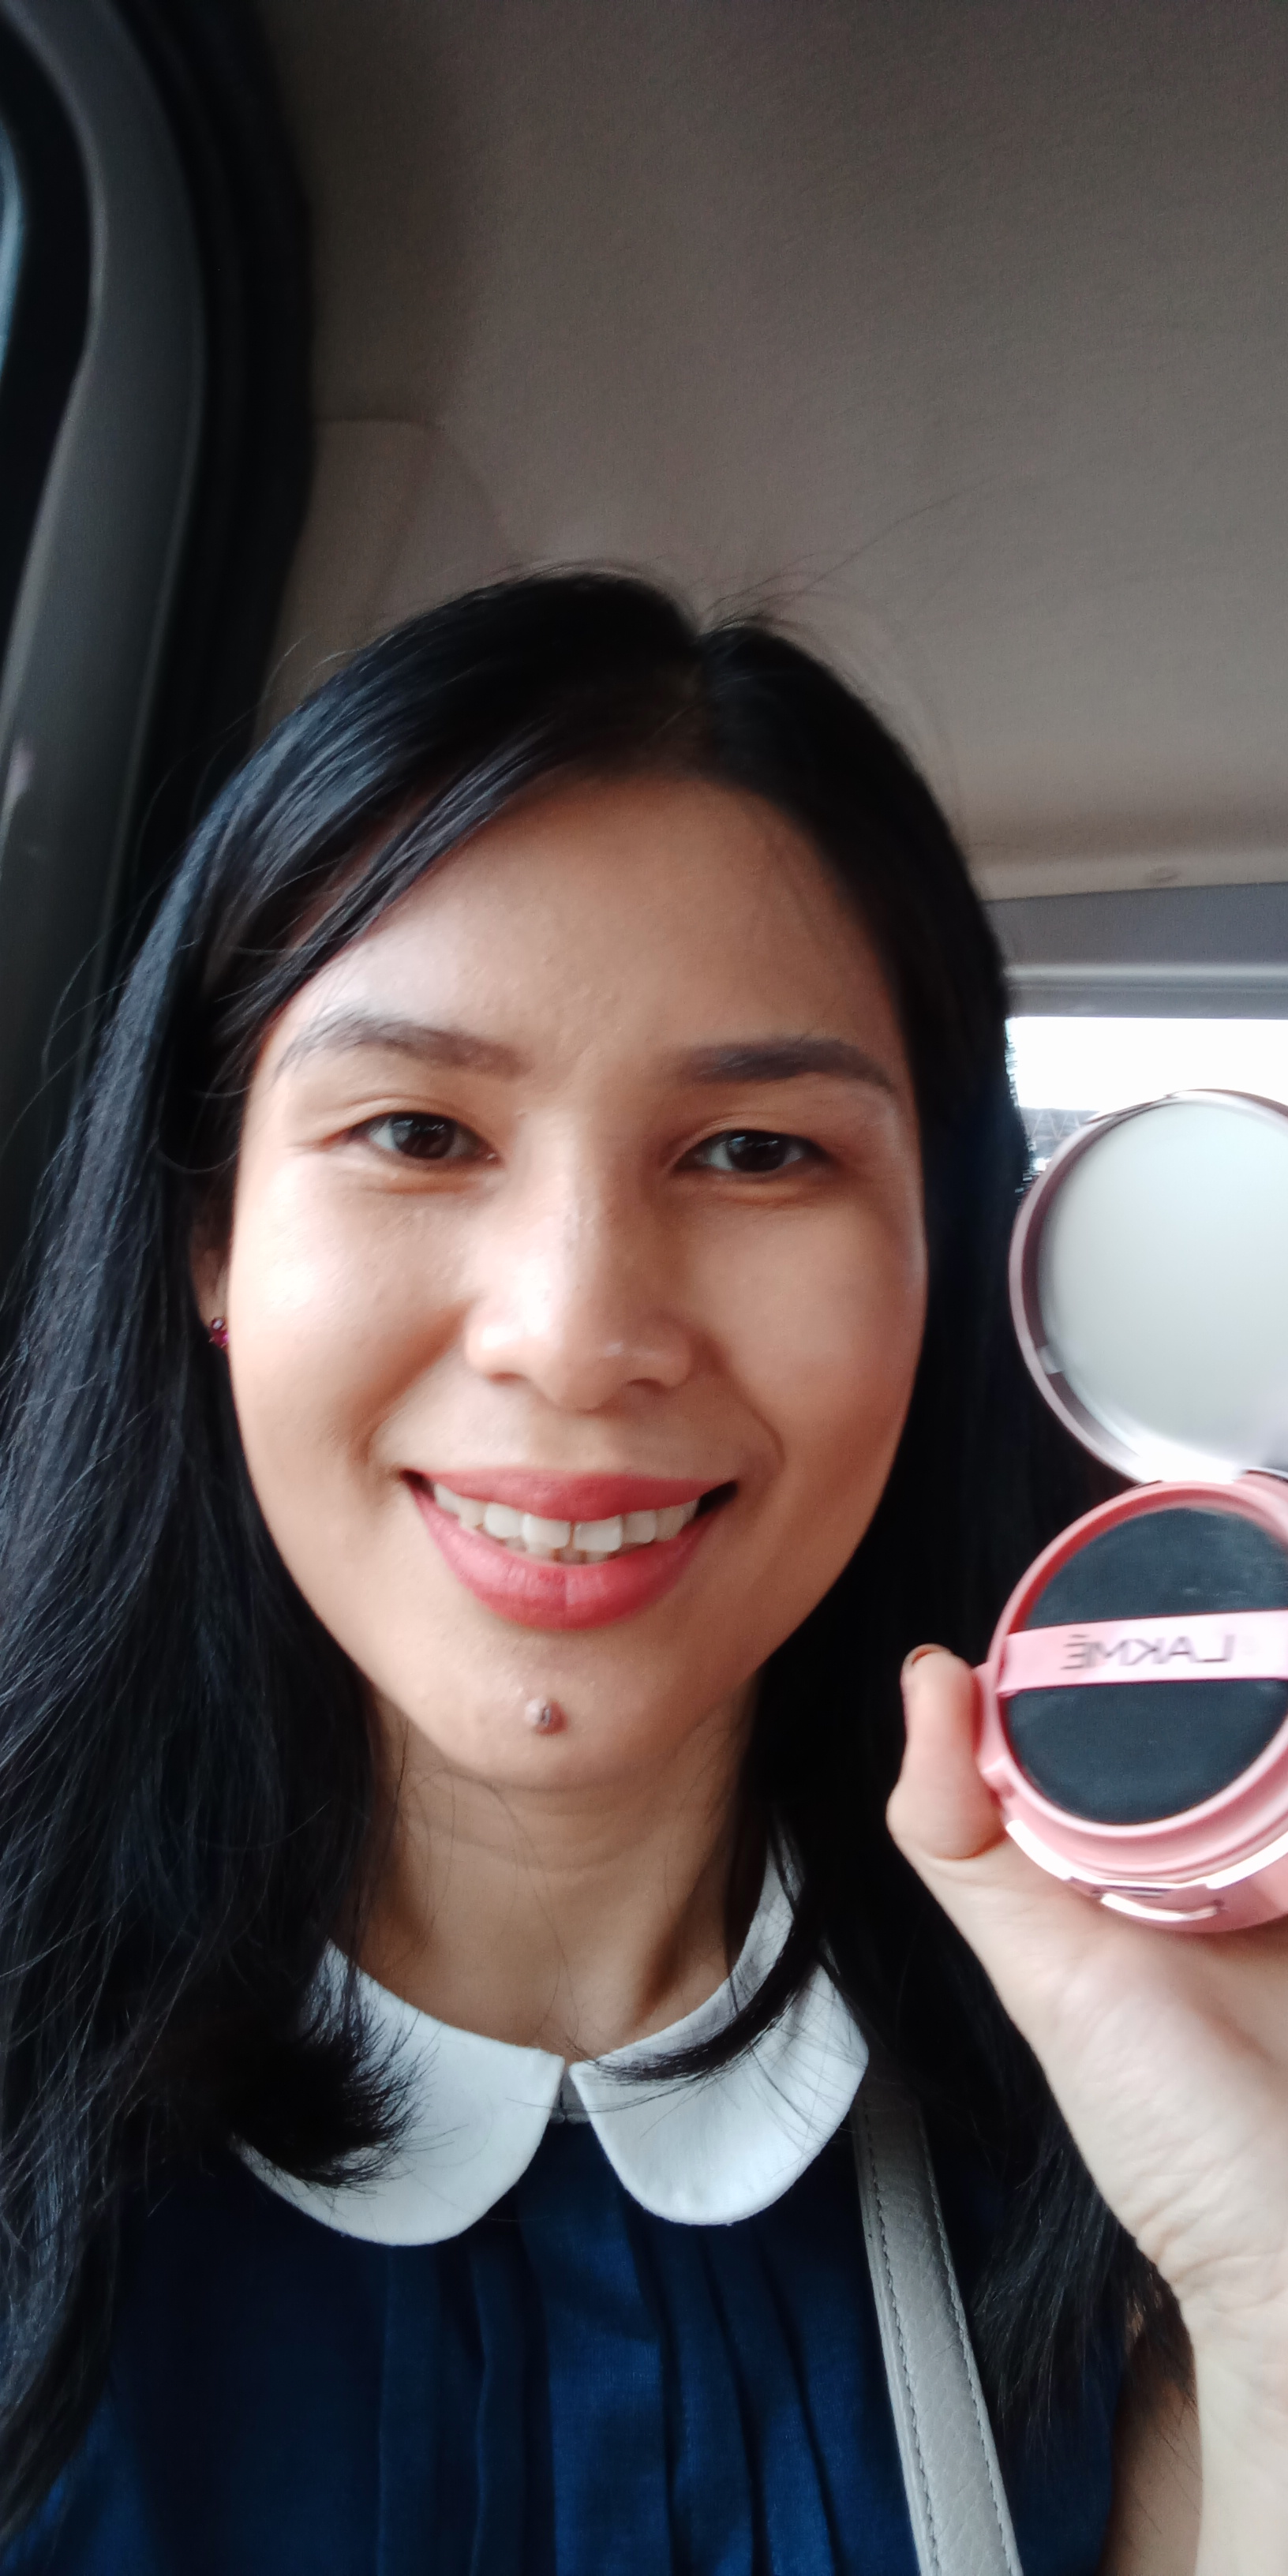 Lakme 9to5 Reinvent Primer+Matte Cushion Foundation